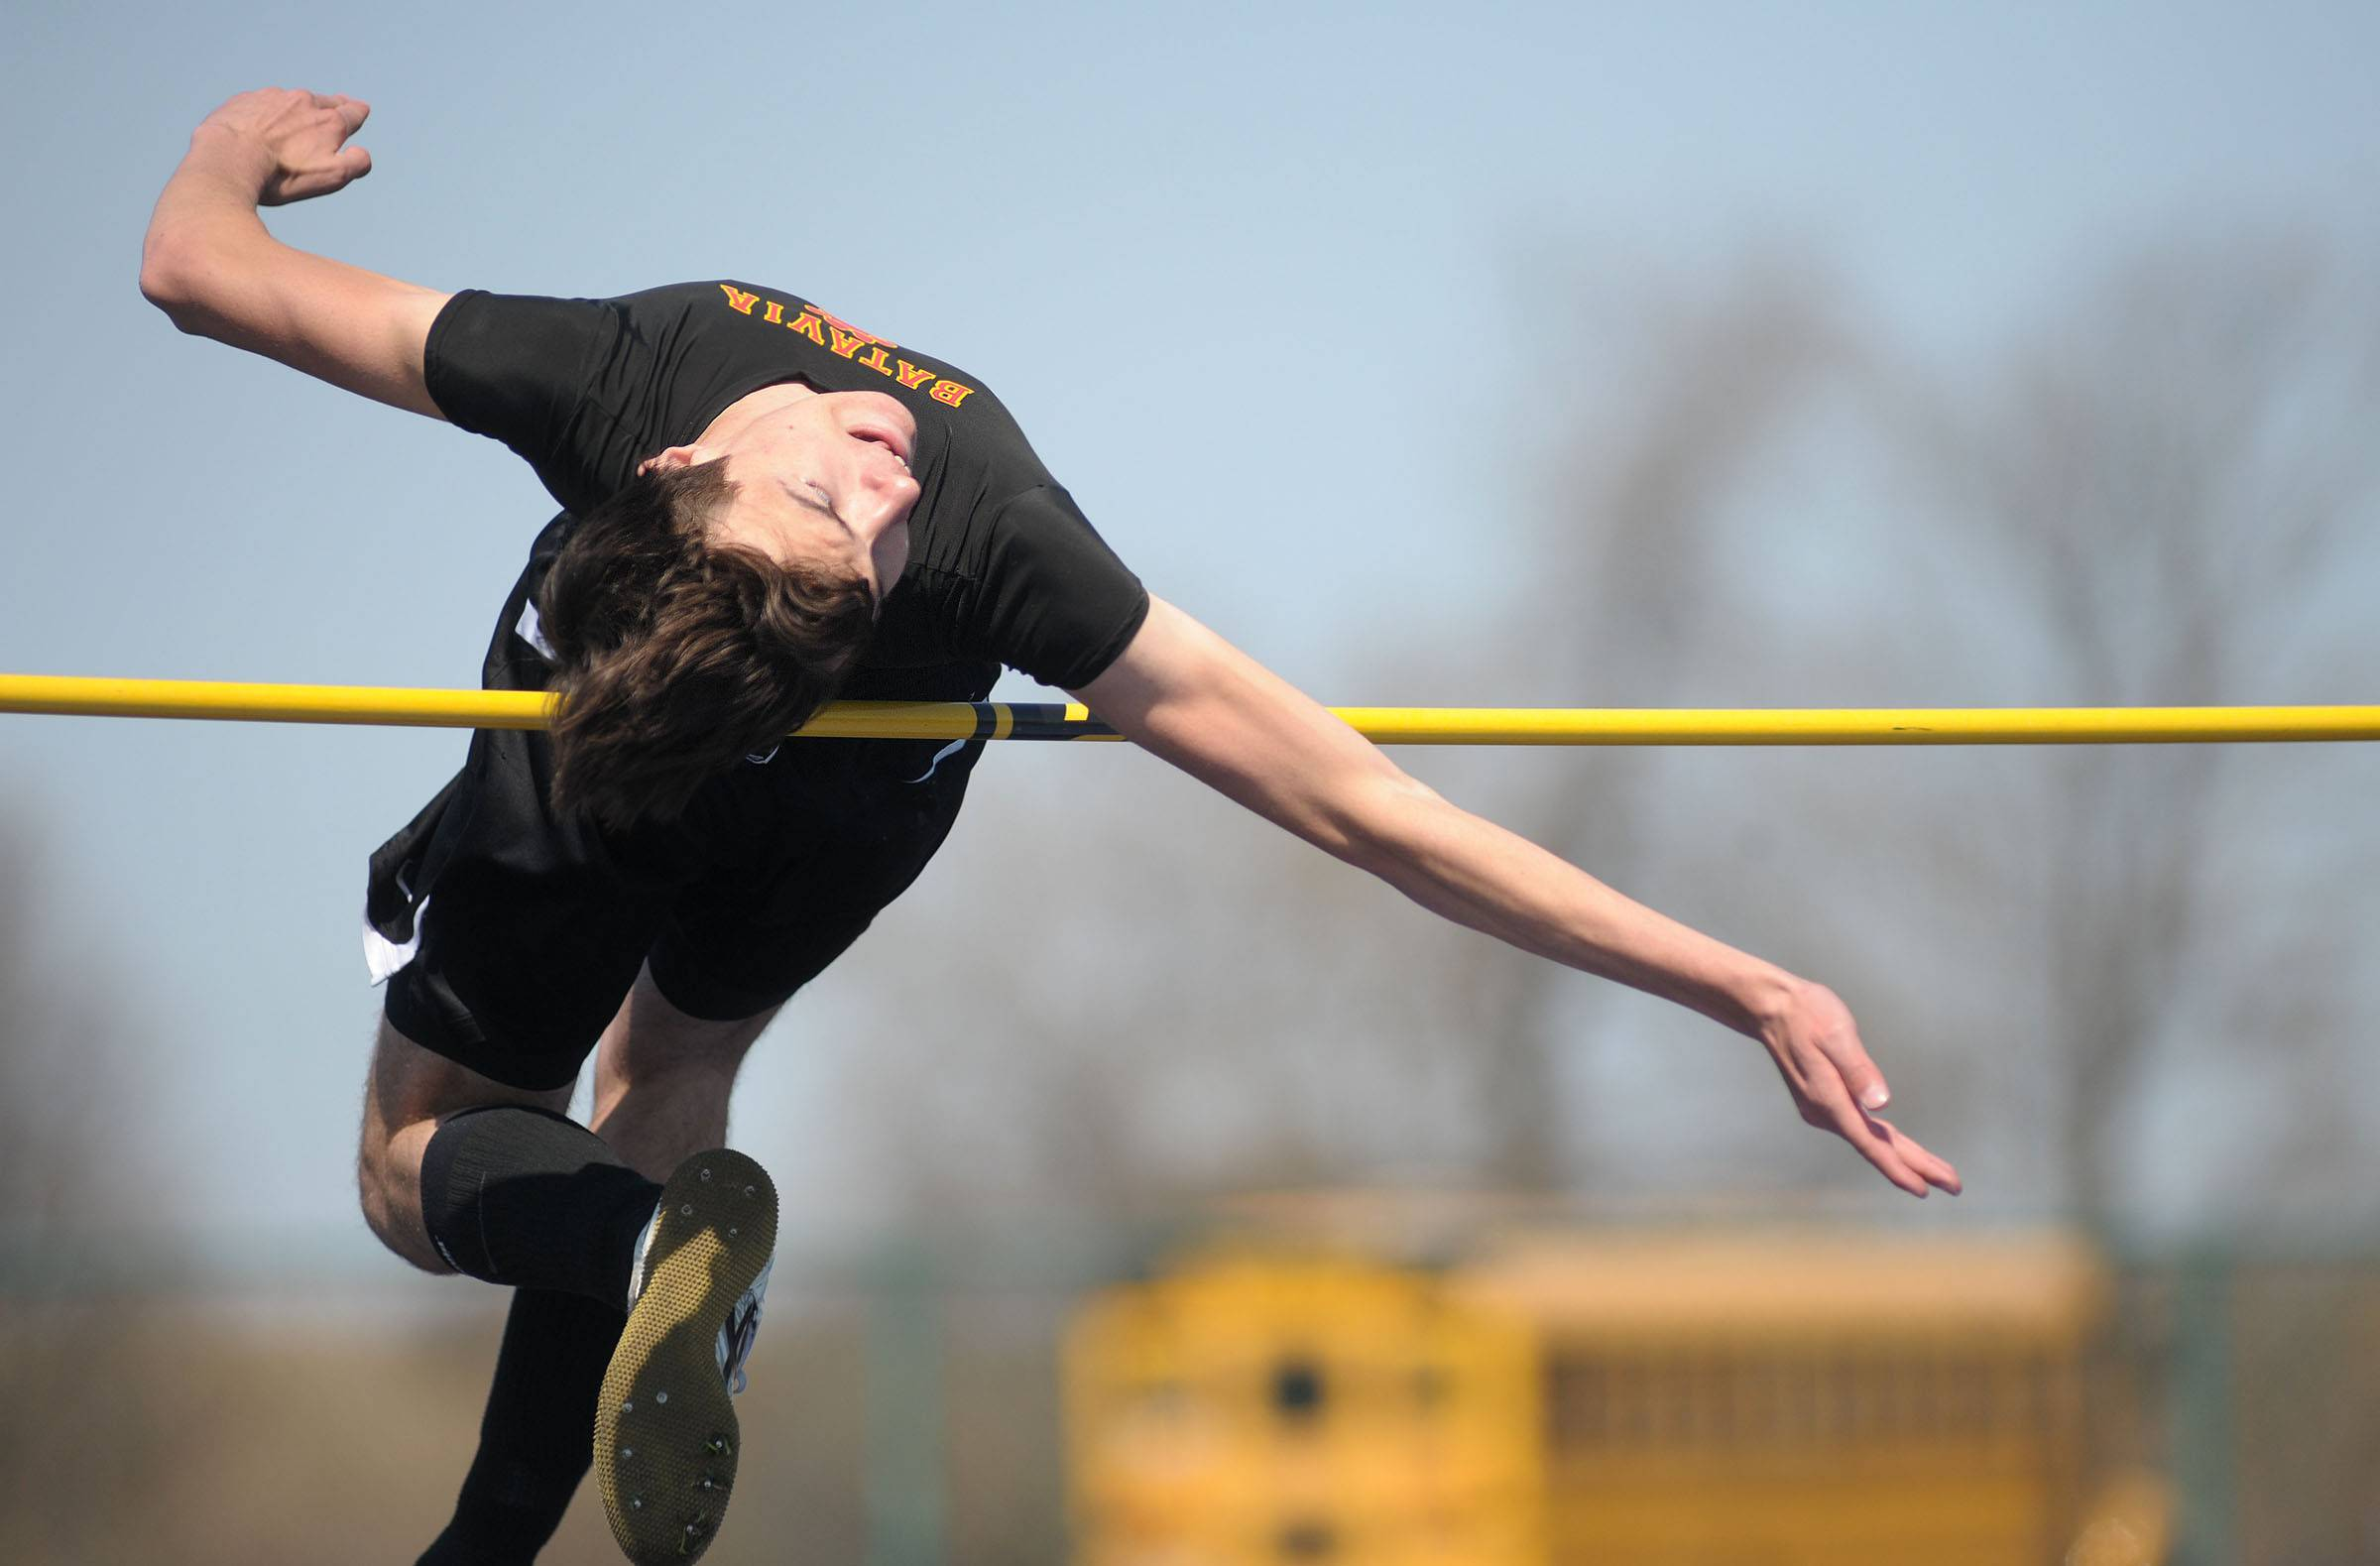 Batavia's Mark Majka in the high jump finals at Kaneland's Peterson Prep Invitational on Saturday, April 26.